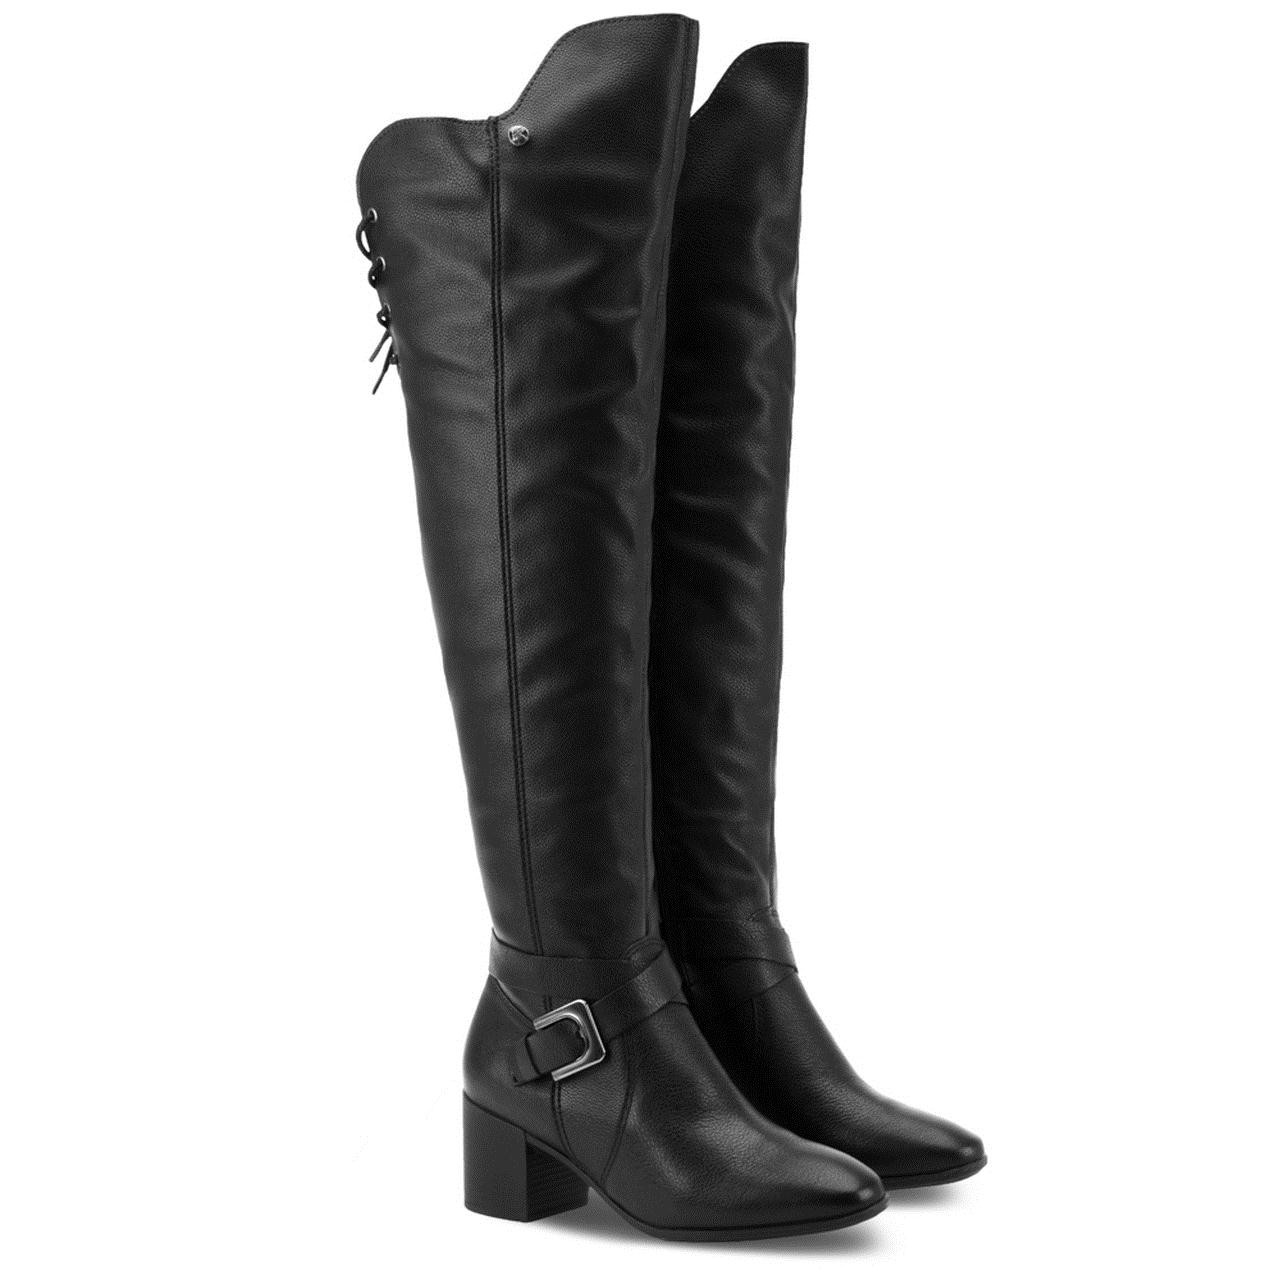 BOTA BOTTERO FEMININO OVER 314207 PRETO